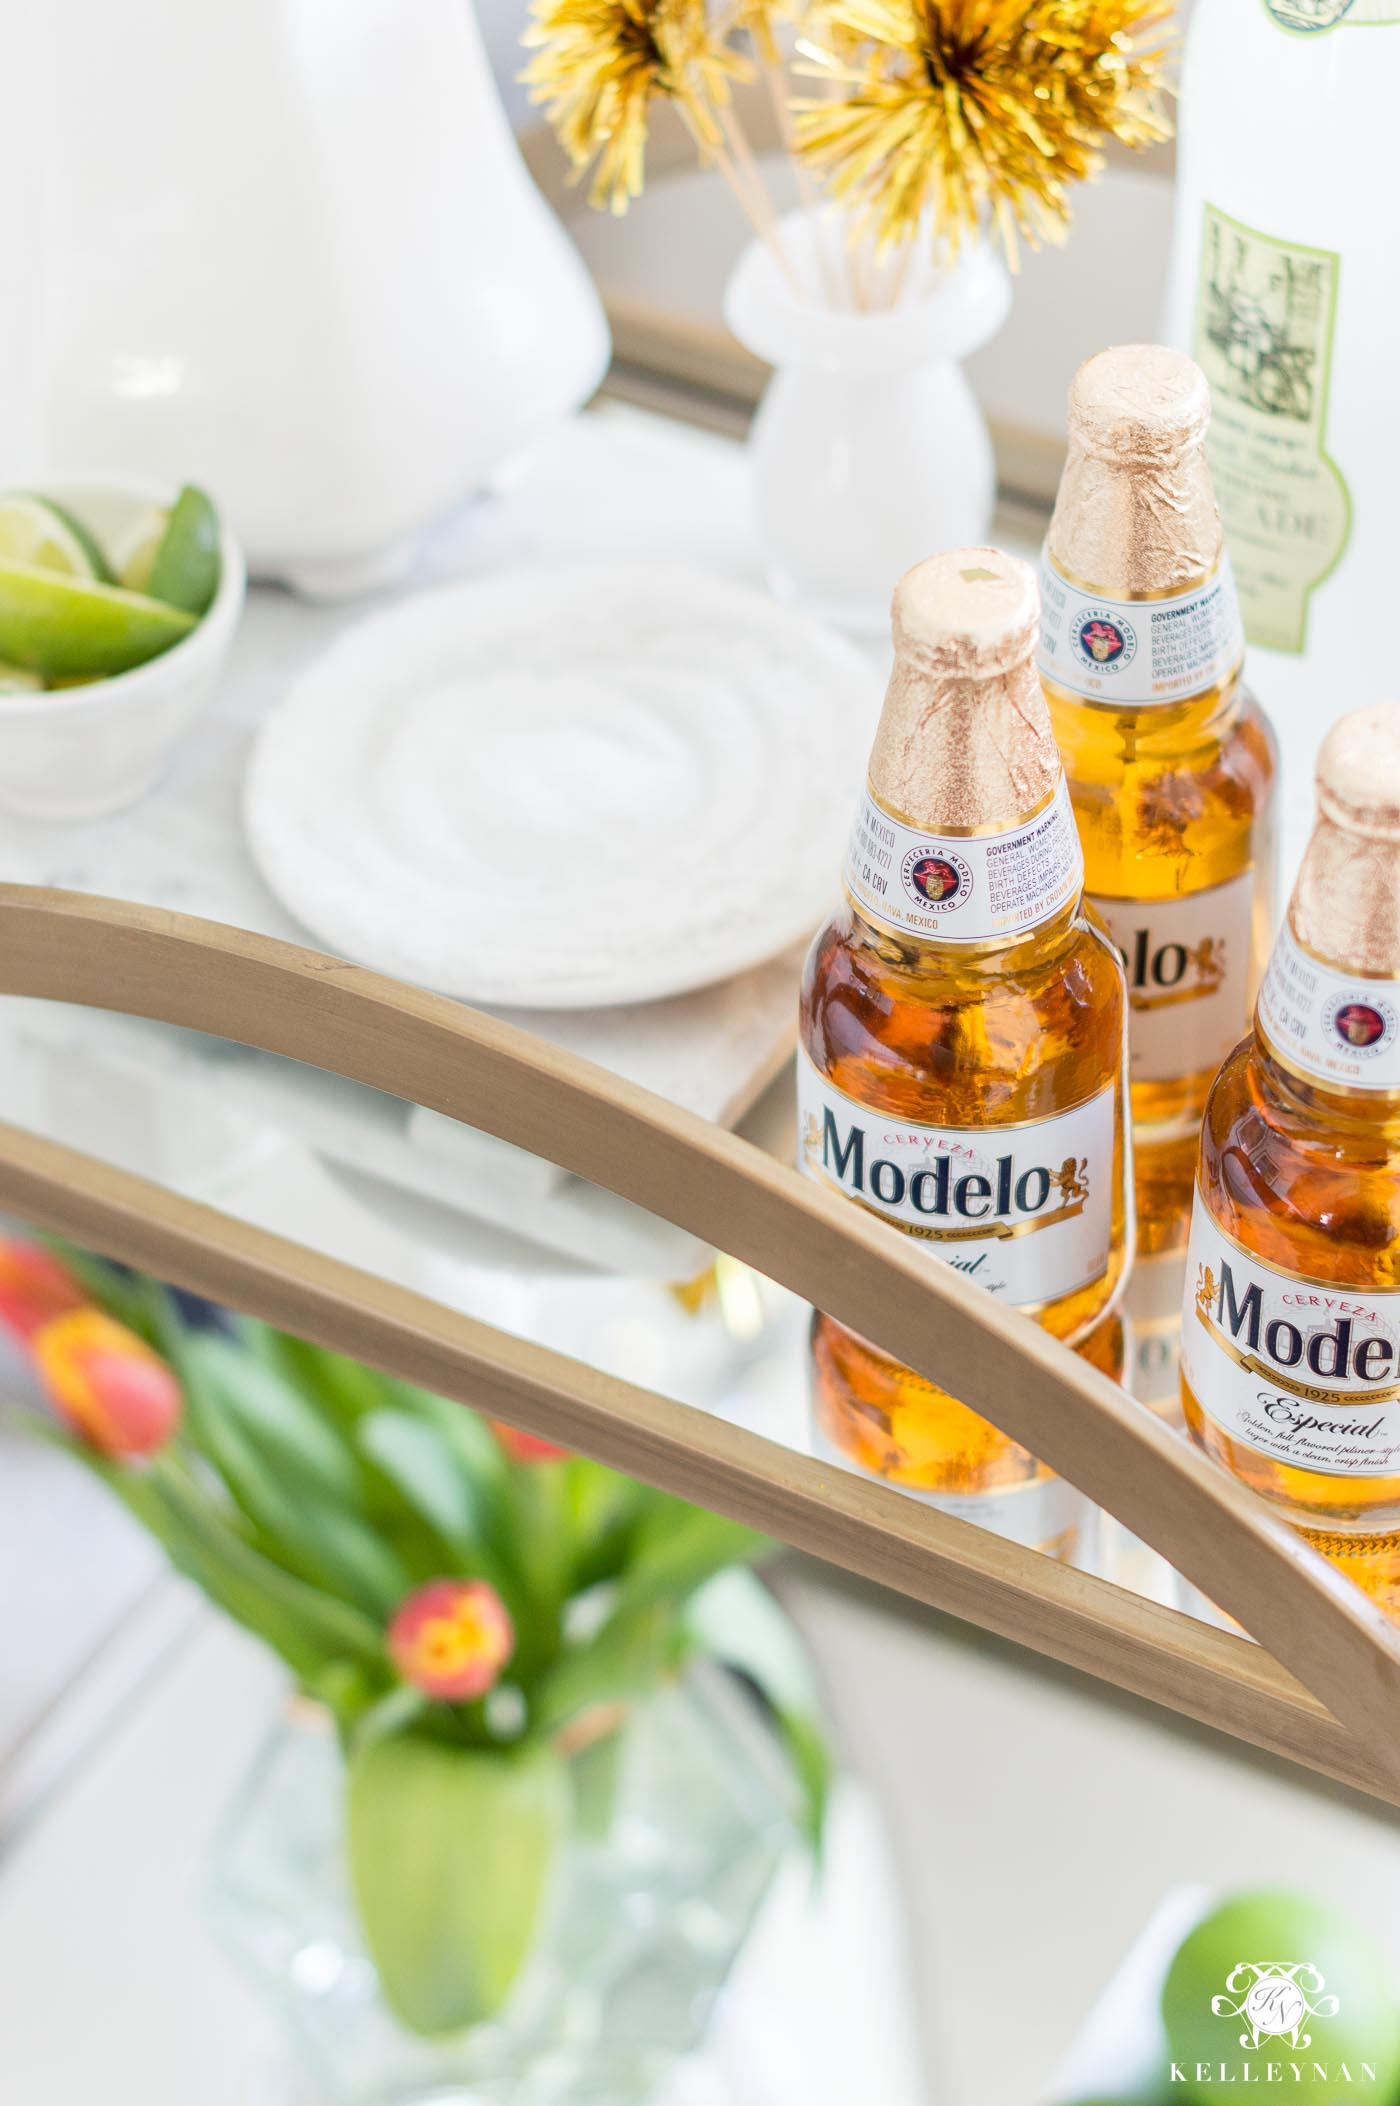 Modelo styled on Mexican Bar Cart